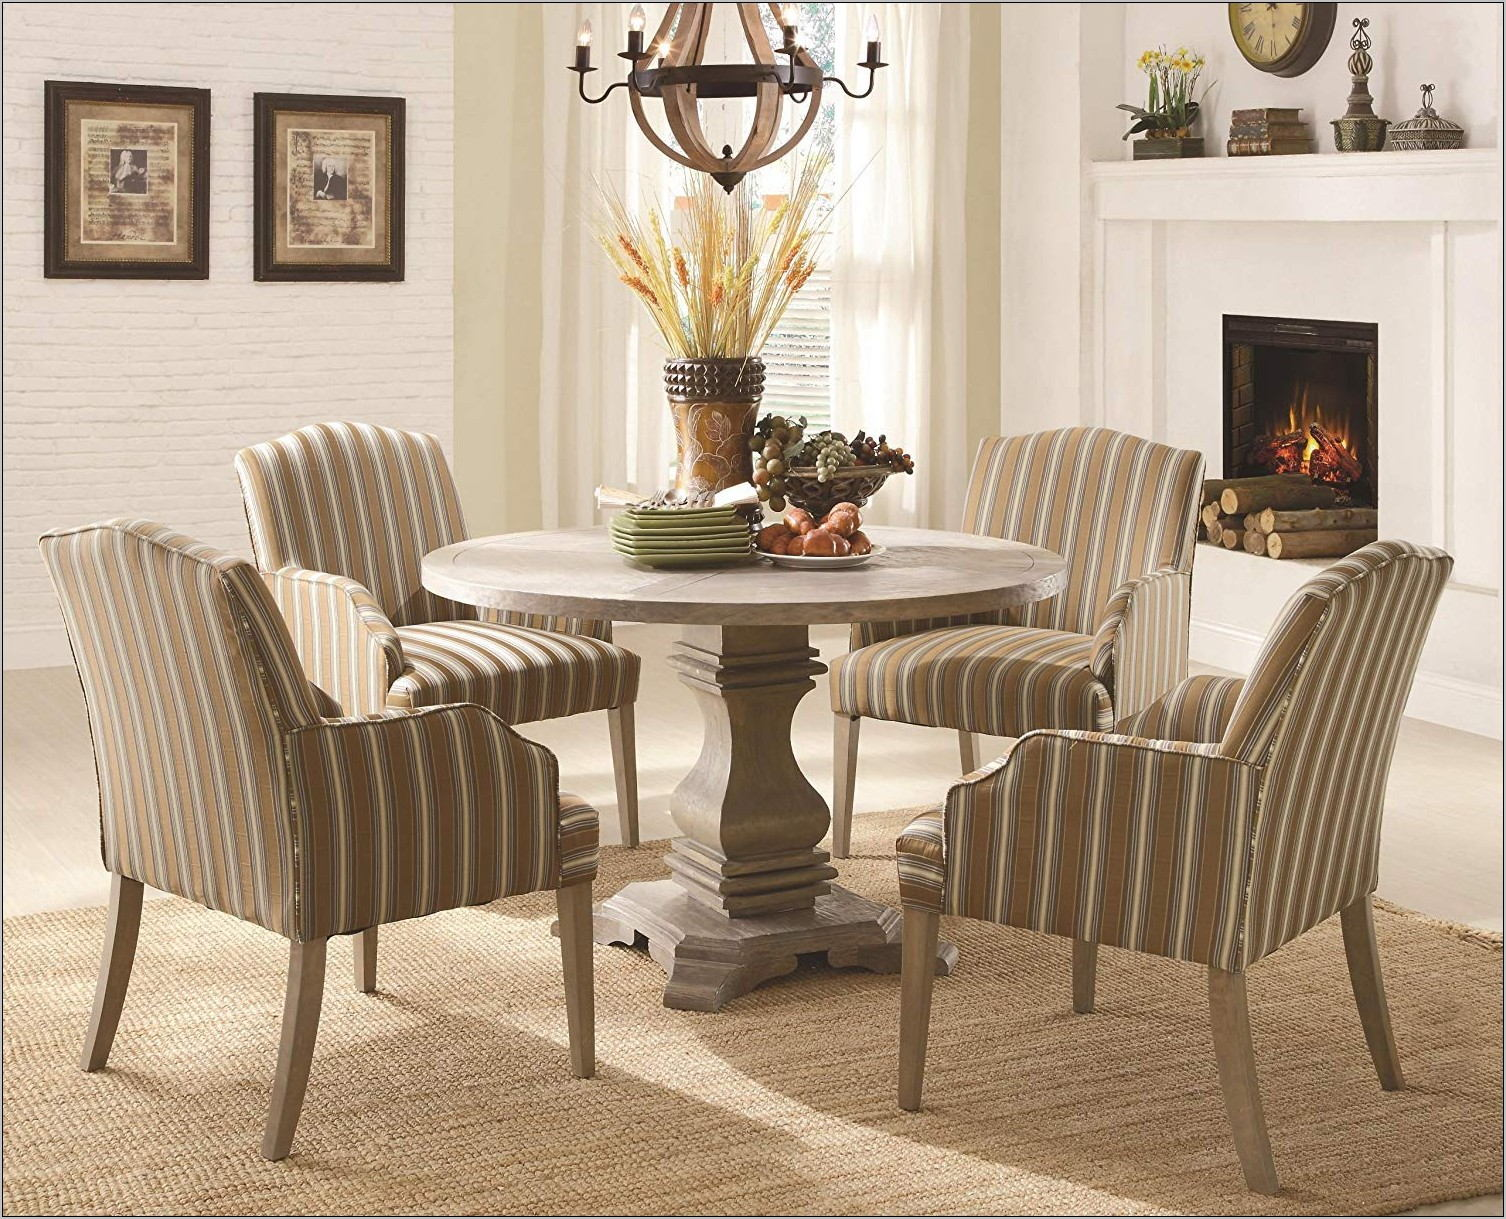 5 Piece Round Dining Room Set